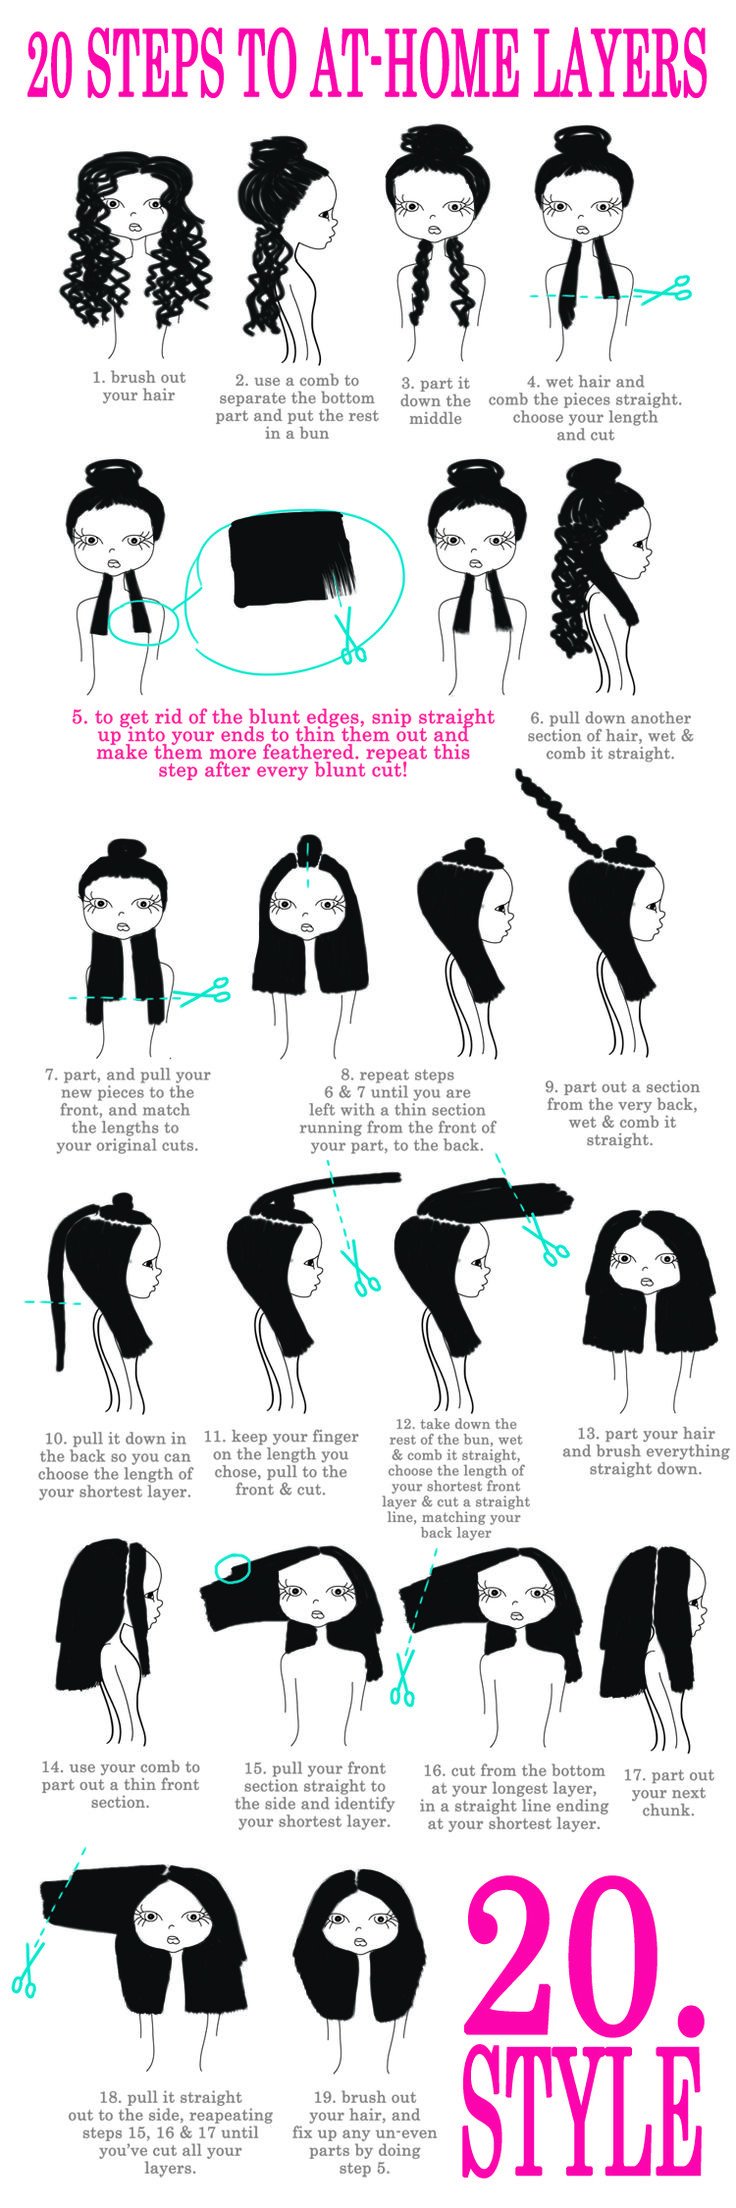 Best ideas about How To Cut Layers In Long Hair Yourself . Save or Pin Friend made this diagram how to cut layered hair she cuts Now.